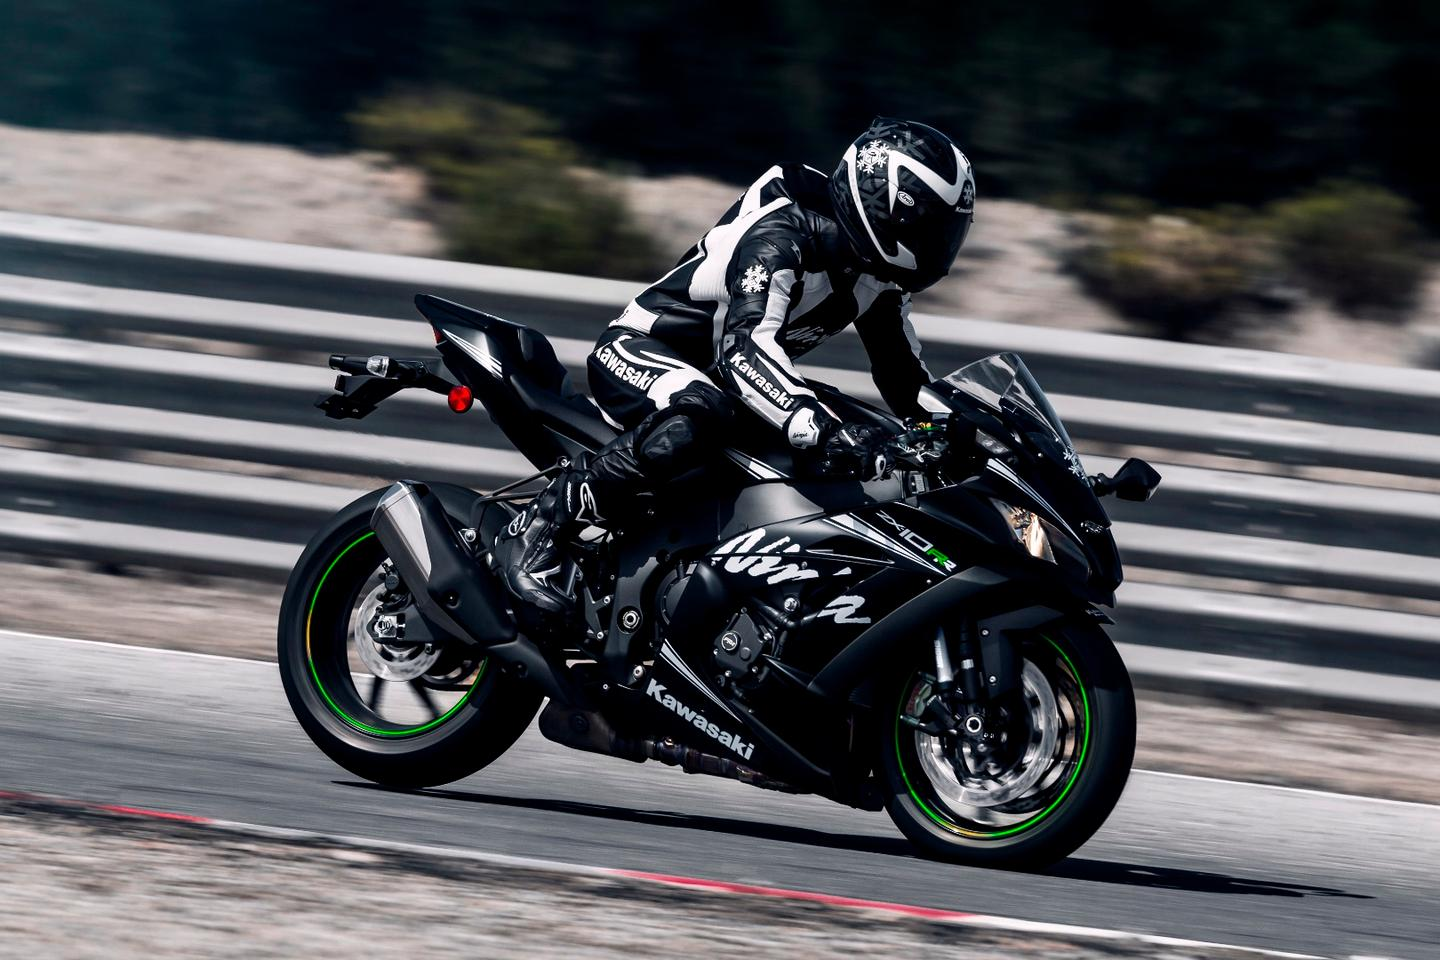 Kawasaki stays the course with 2018 Ninja ZX-10RR